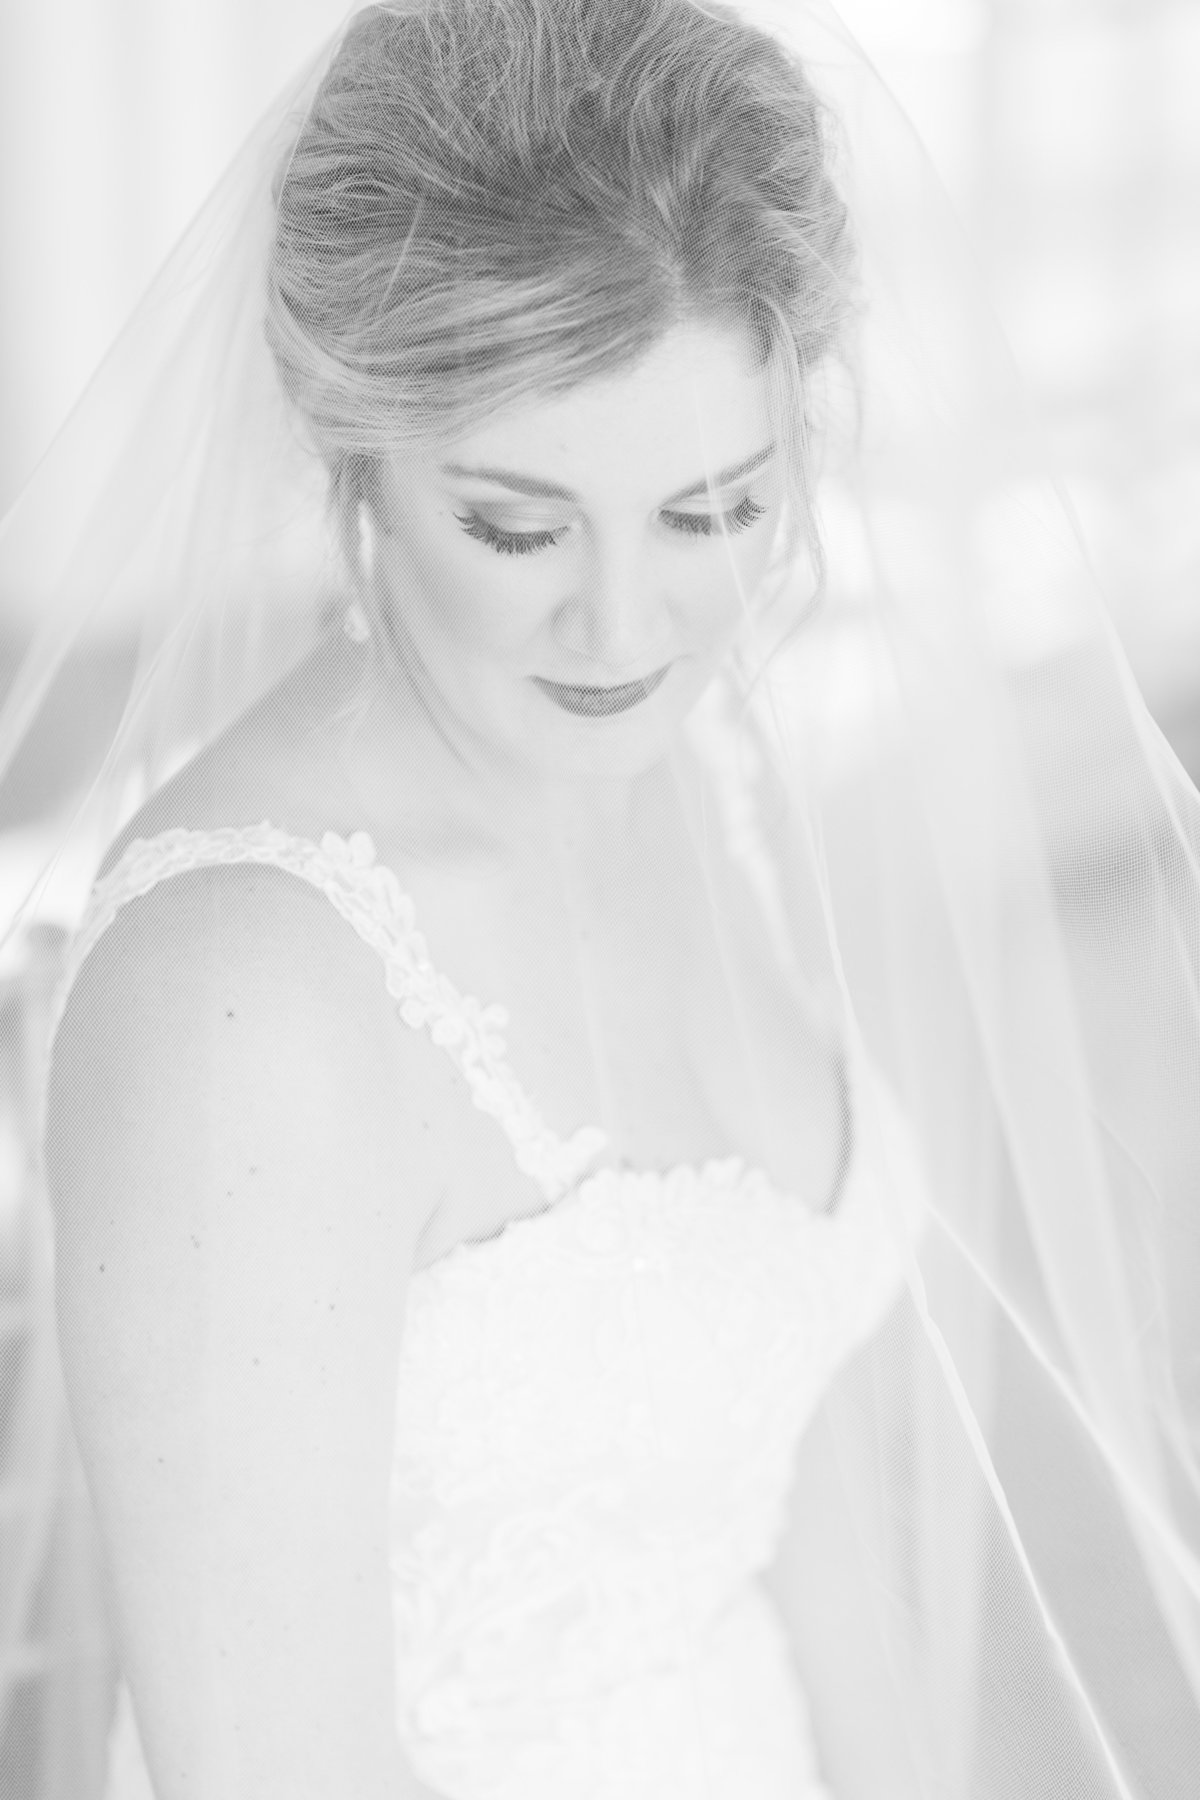 Separk_Mansion_Bridal_Session_Katheryn_jeanne_Photography_Cannon_Miller-35